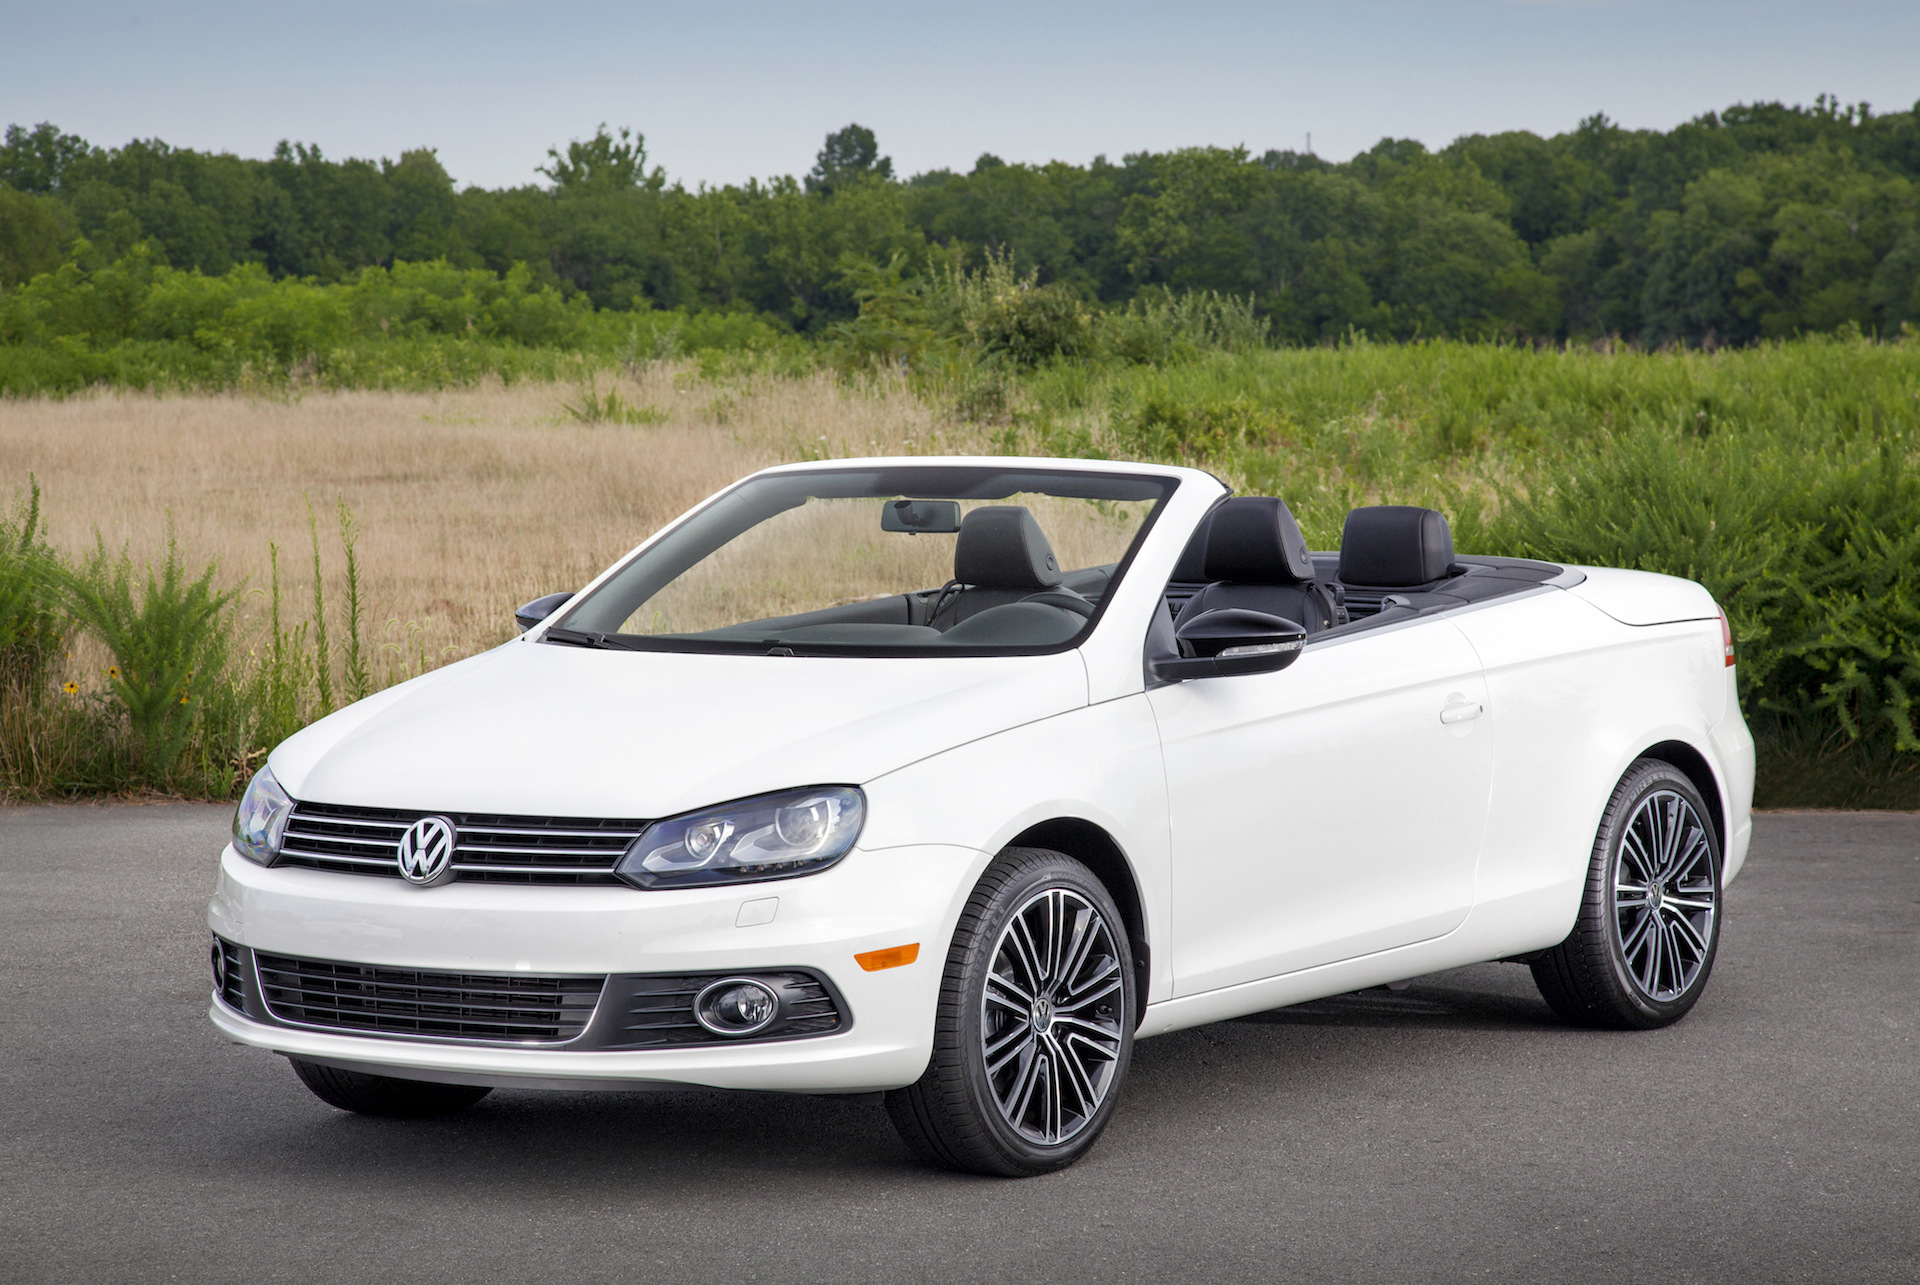 2015 volkswagen eos vw review ratings specs prices and photos the car connection. Black Bedroom Furniture Sets. Home Design Ideas